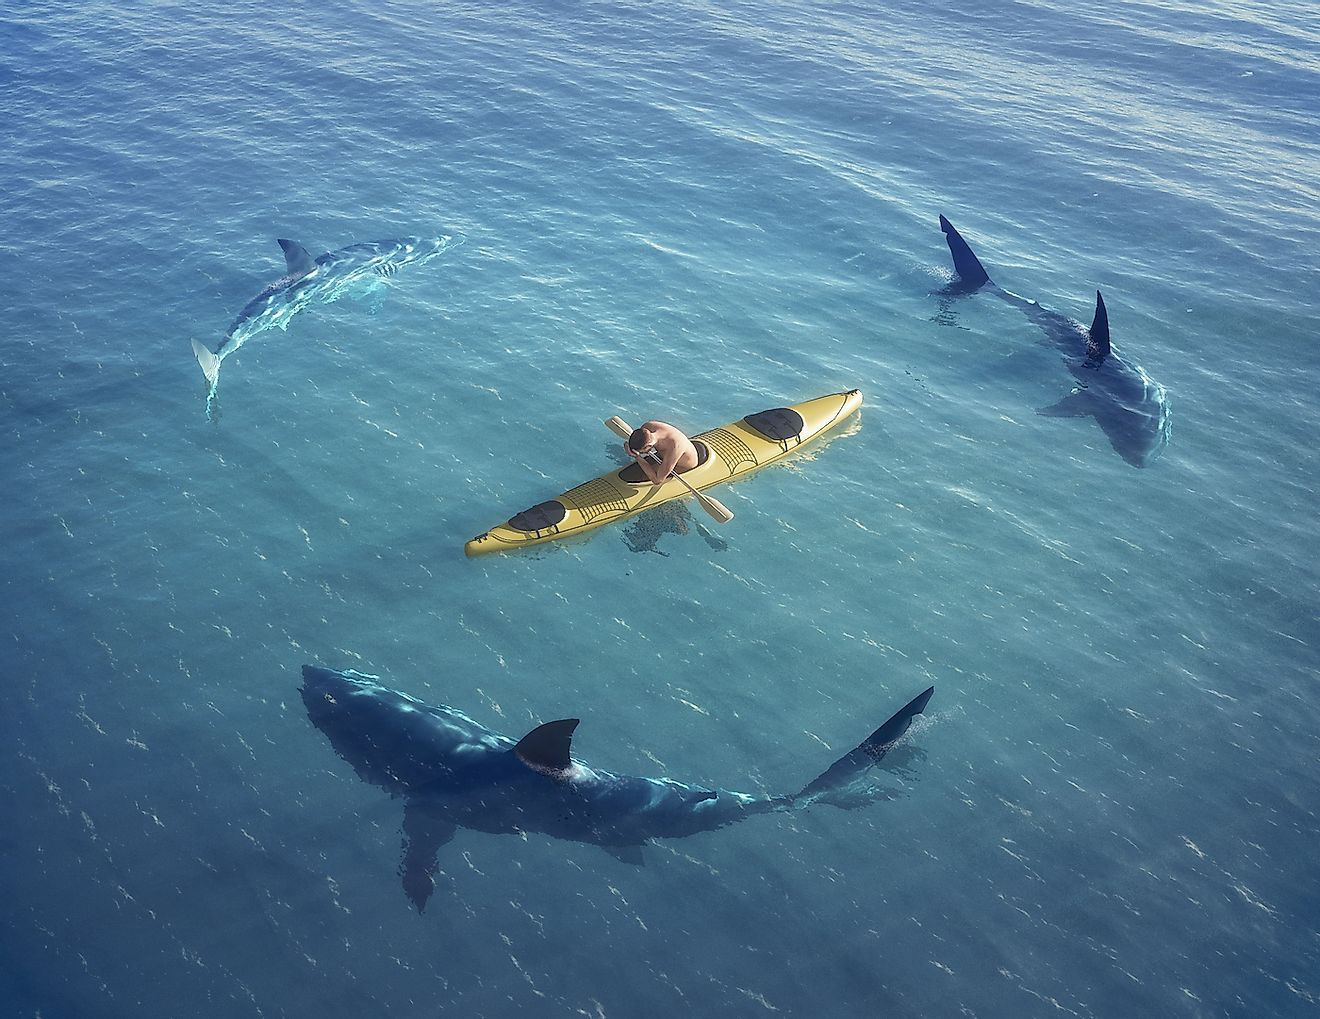 A kayaker surrounded by sharks. Image credit: Musicman/Shutterstock.com